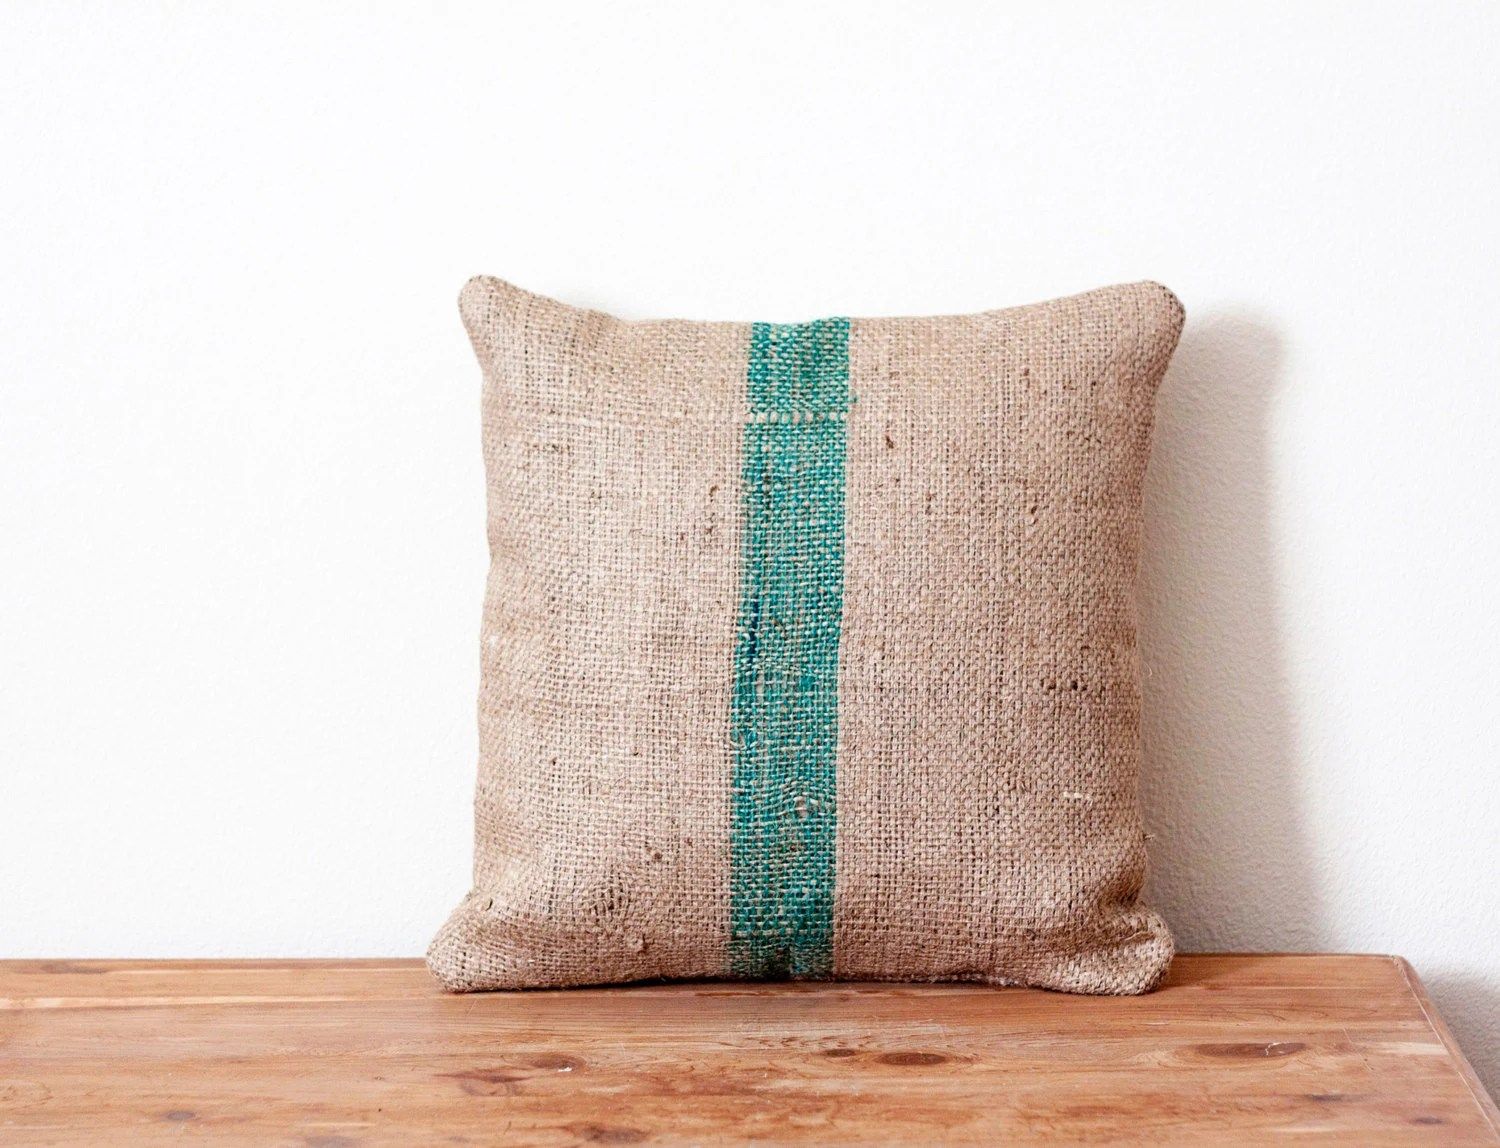 Upcycled Authentic Burlap Coffee Sack Pillow Case - 16in x 16in - High Quality/Rustic/Unisex - Aforetime